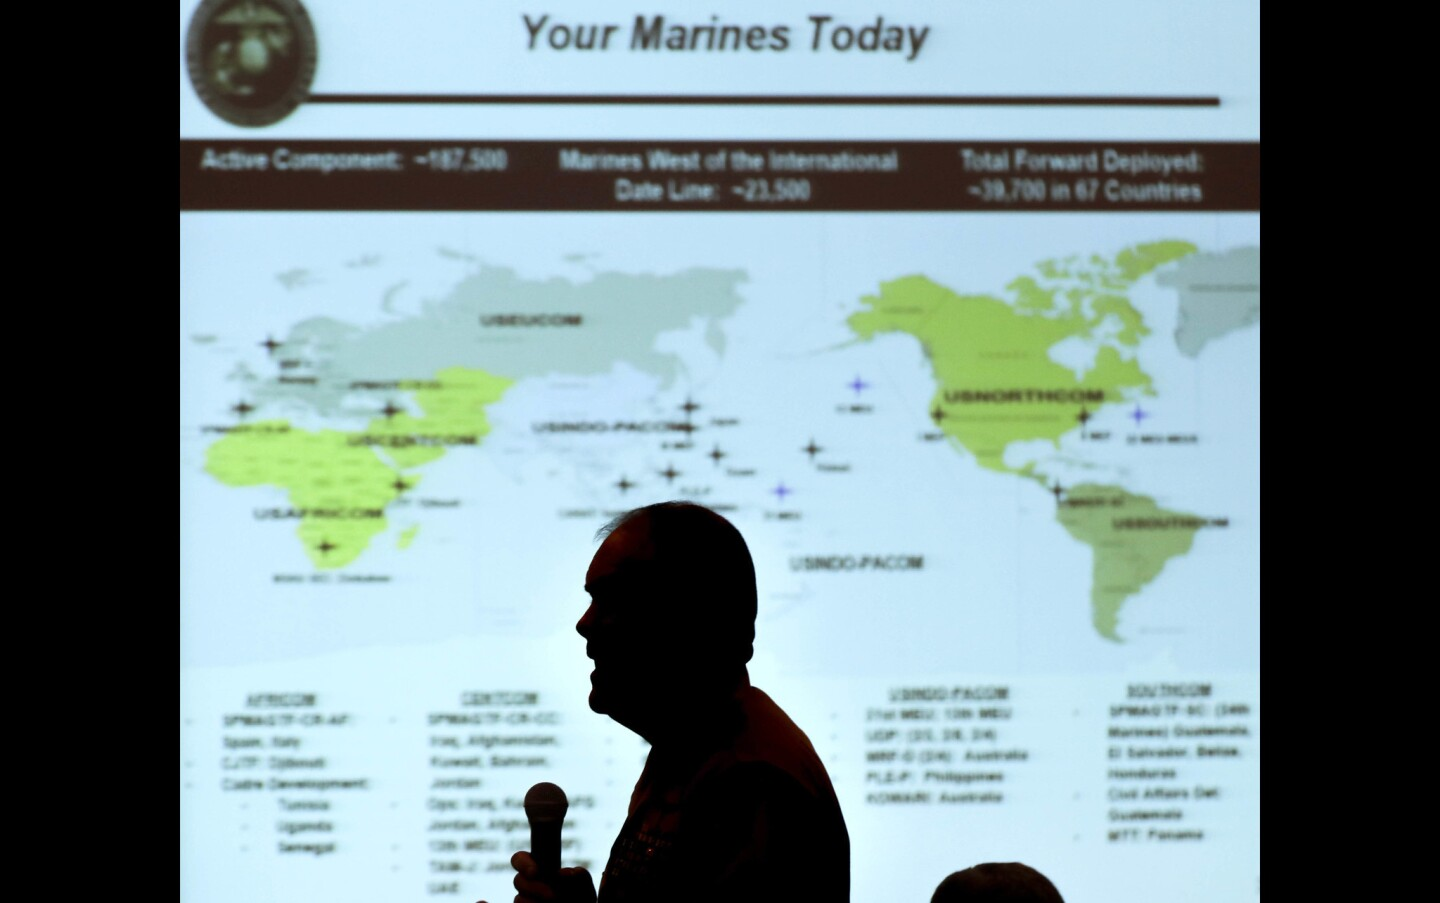 Marine Corps Commandant General Robert B. Neller addresses the San Diego Military Advisory Council (SDMAC), during a stop at Naval Base Point Loma.